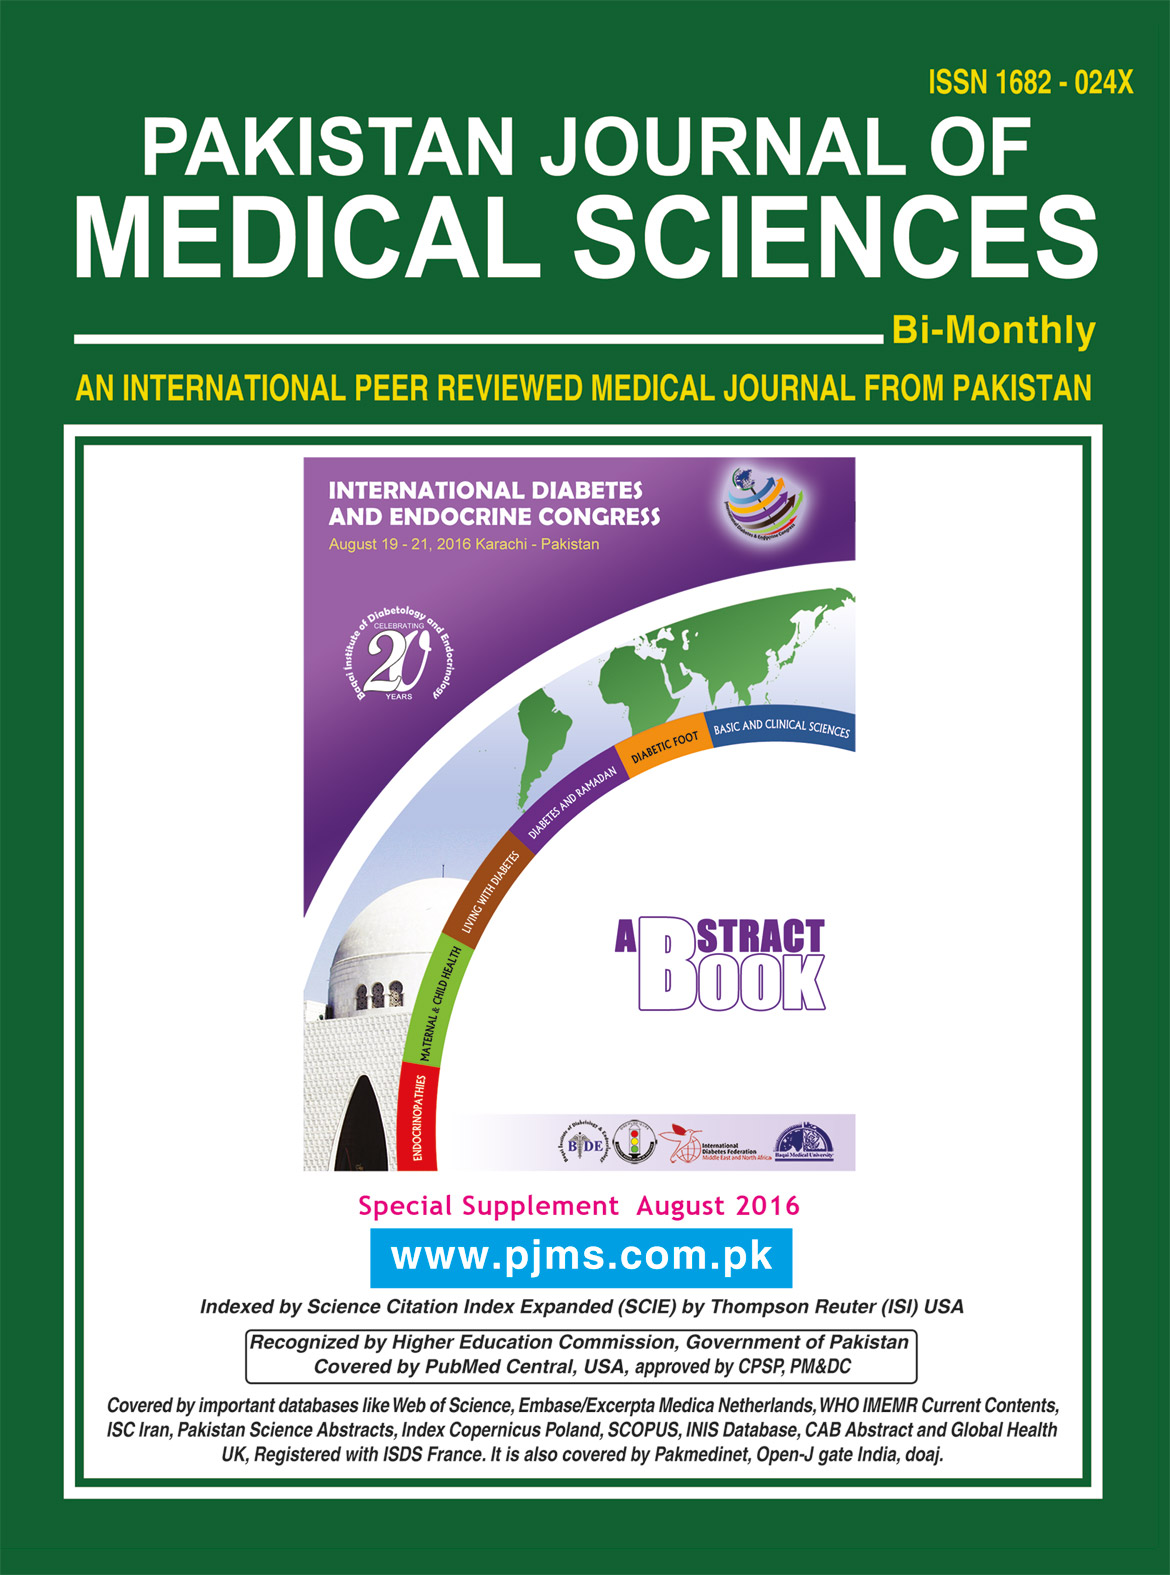 Special Supplement August 2016